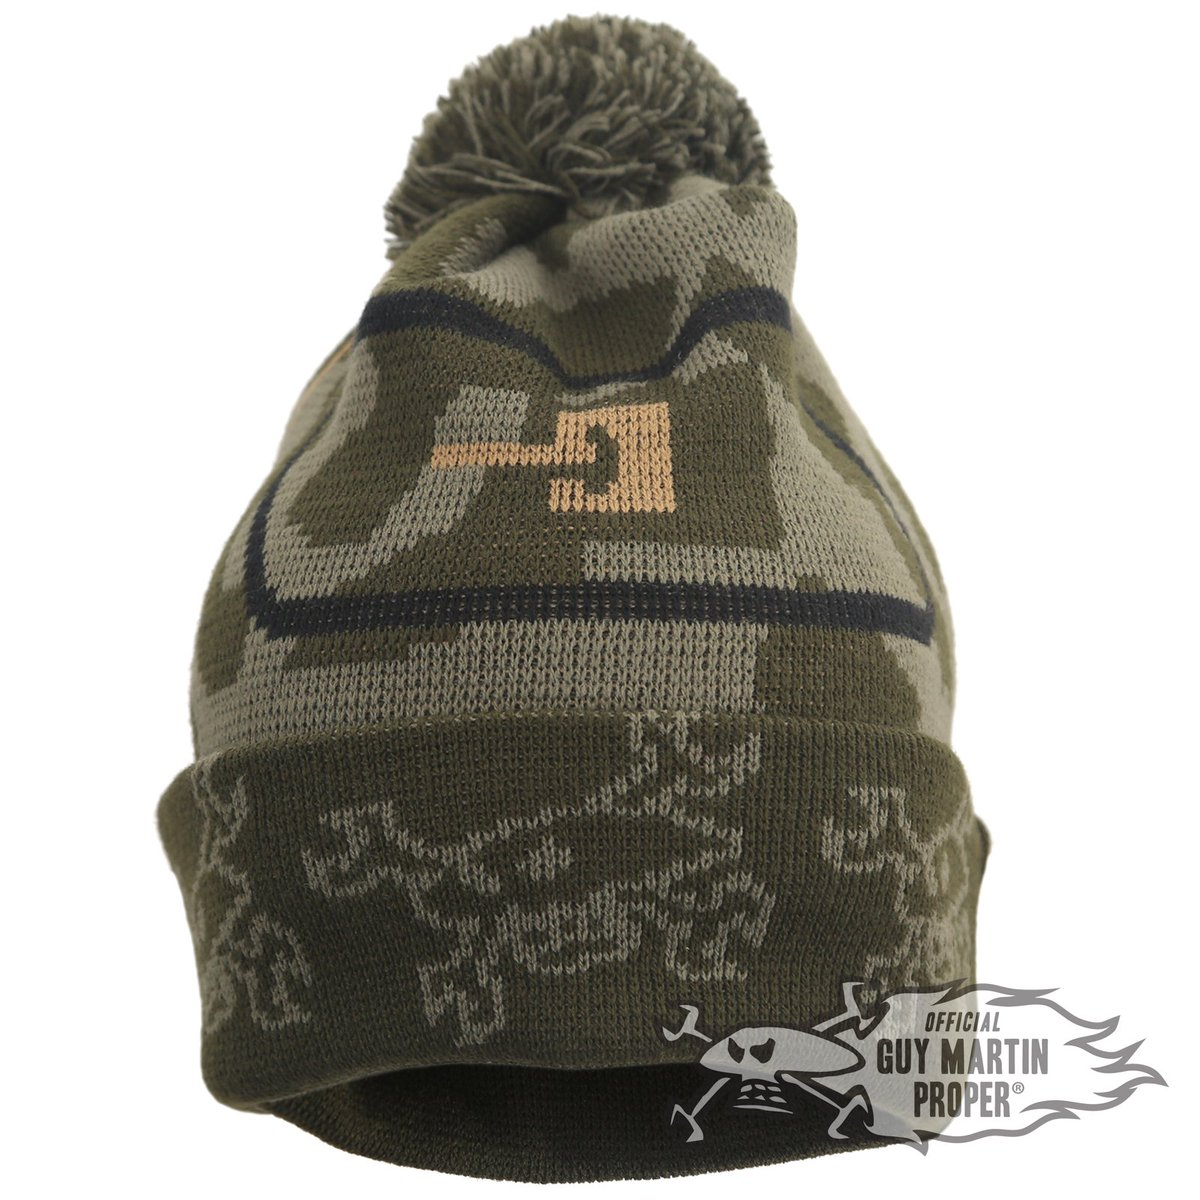 4fd57f9ec5f New Head Gasket Mark IV Bobble hat on sale now at  http   www.guymartinproper.com with £1 from every hat sold going to the  Norfolk Tank Museum.